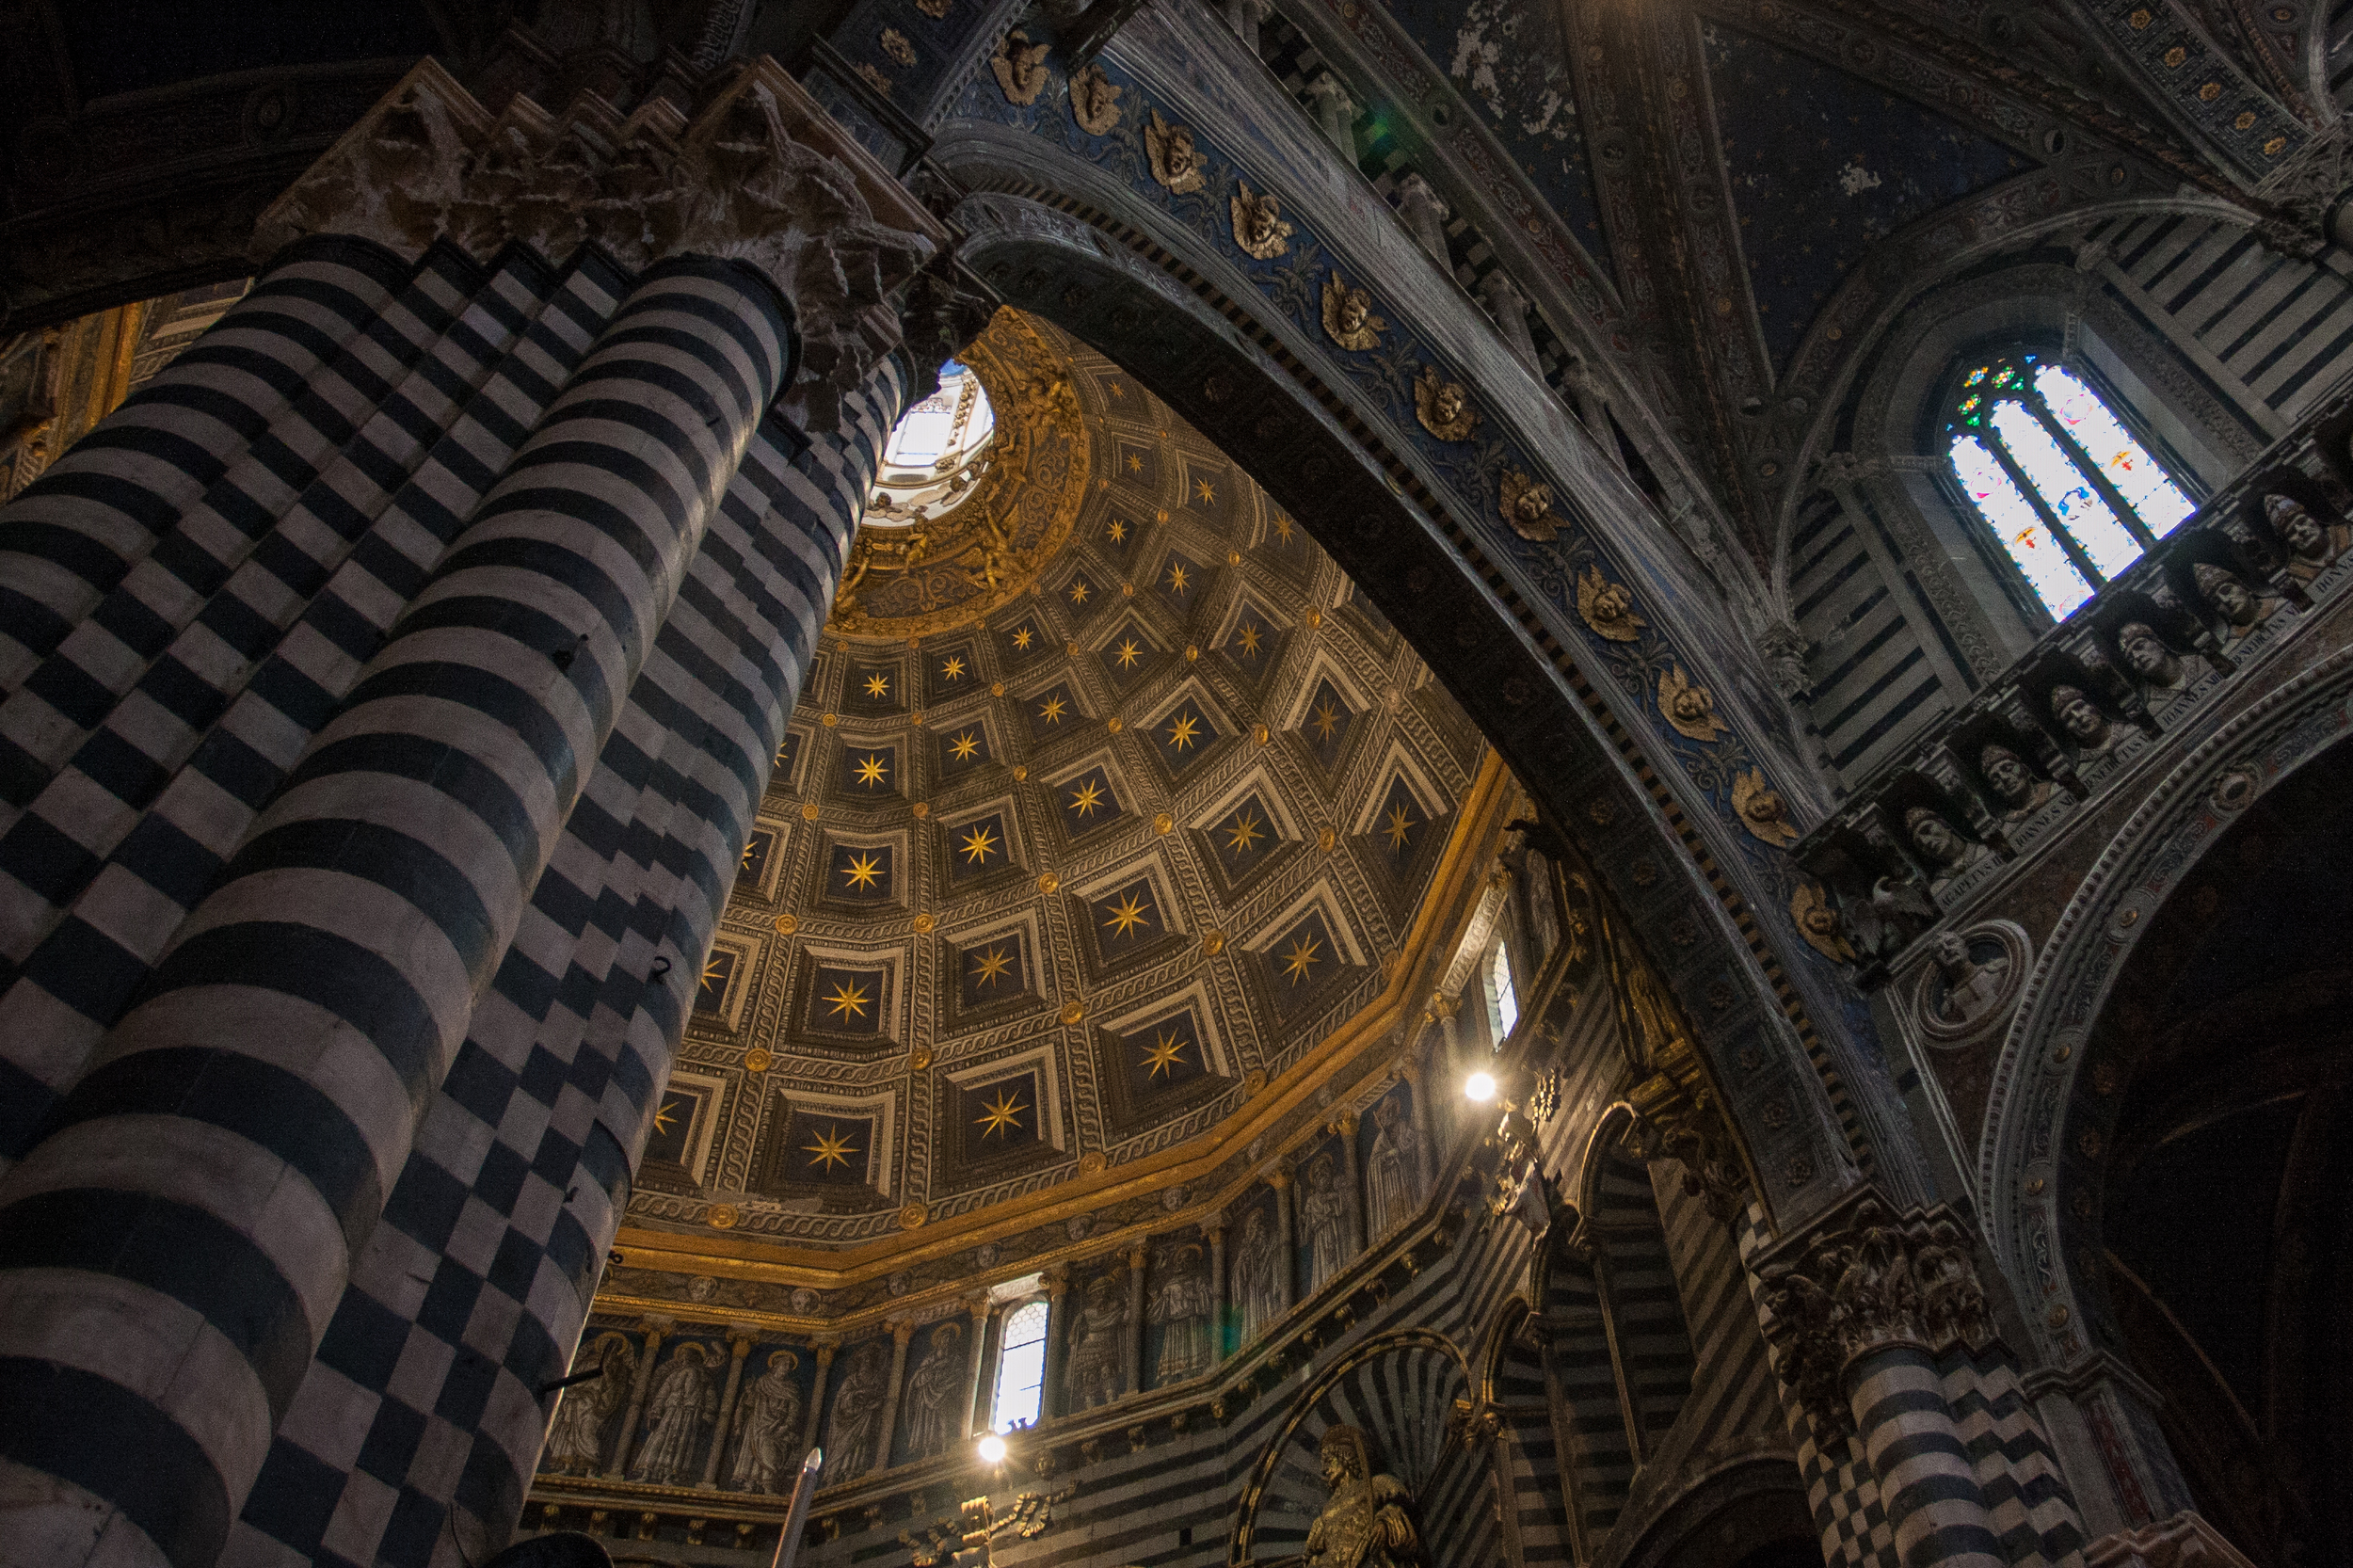 Looking up at the dizzying architecture of the Duomo's interior.